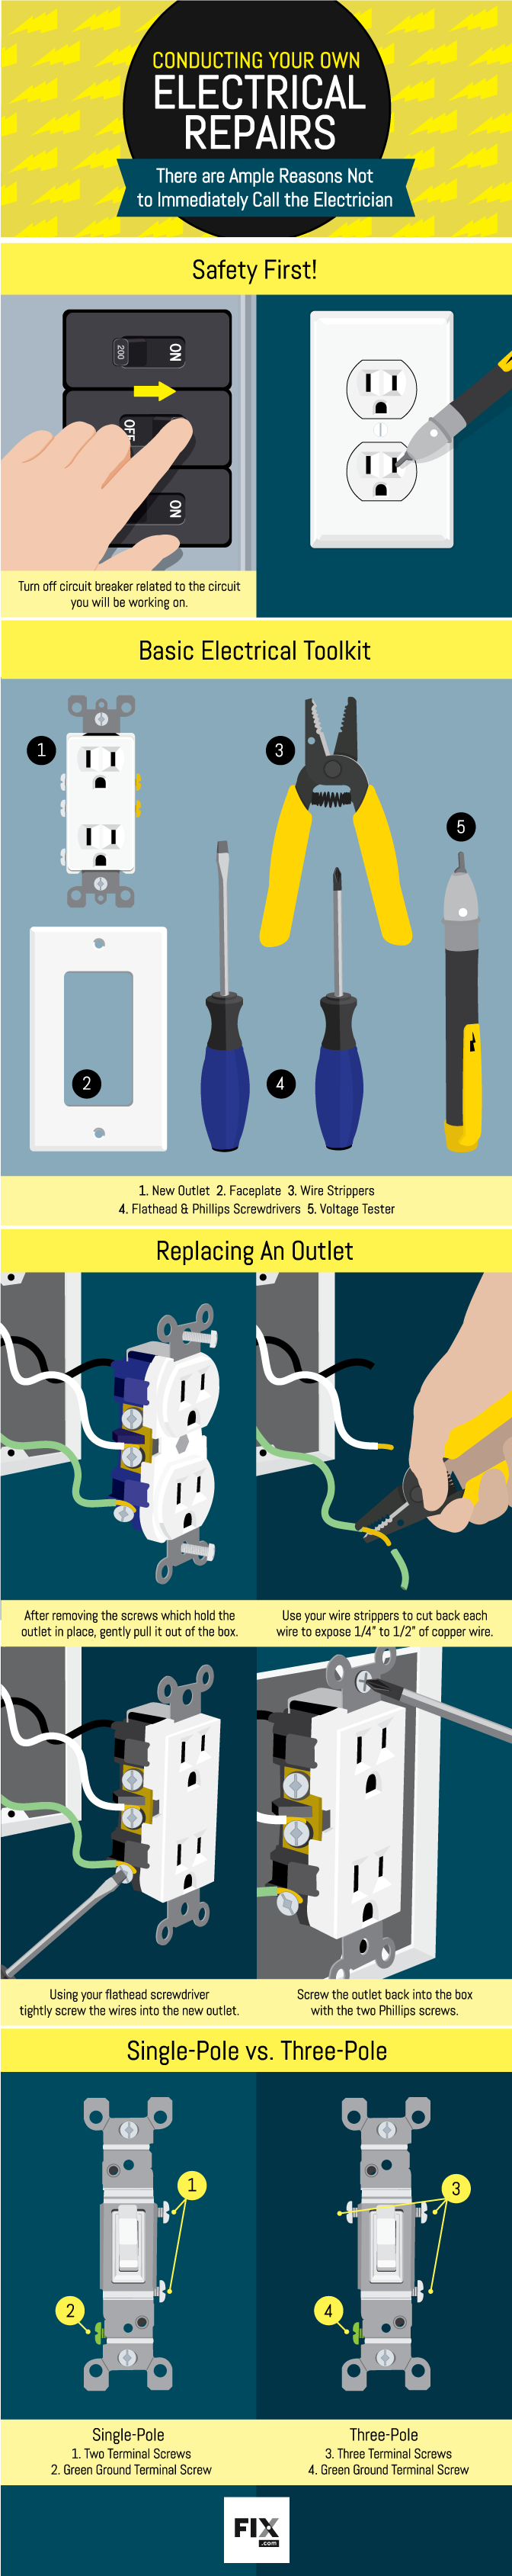 Conduct Electrical Repairs On Outlets And Switches Basic Home Wiring Troubleshooting